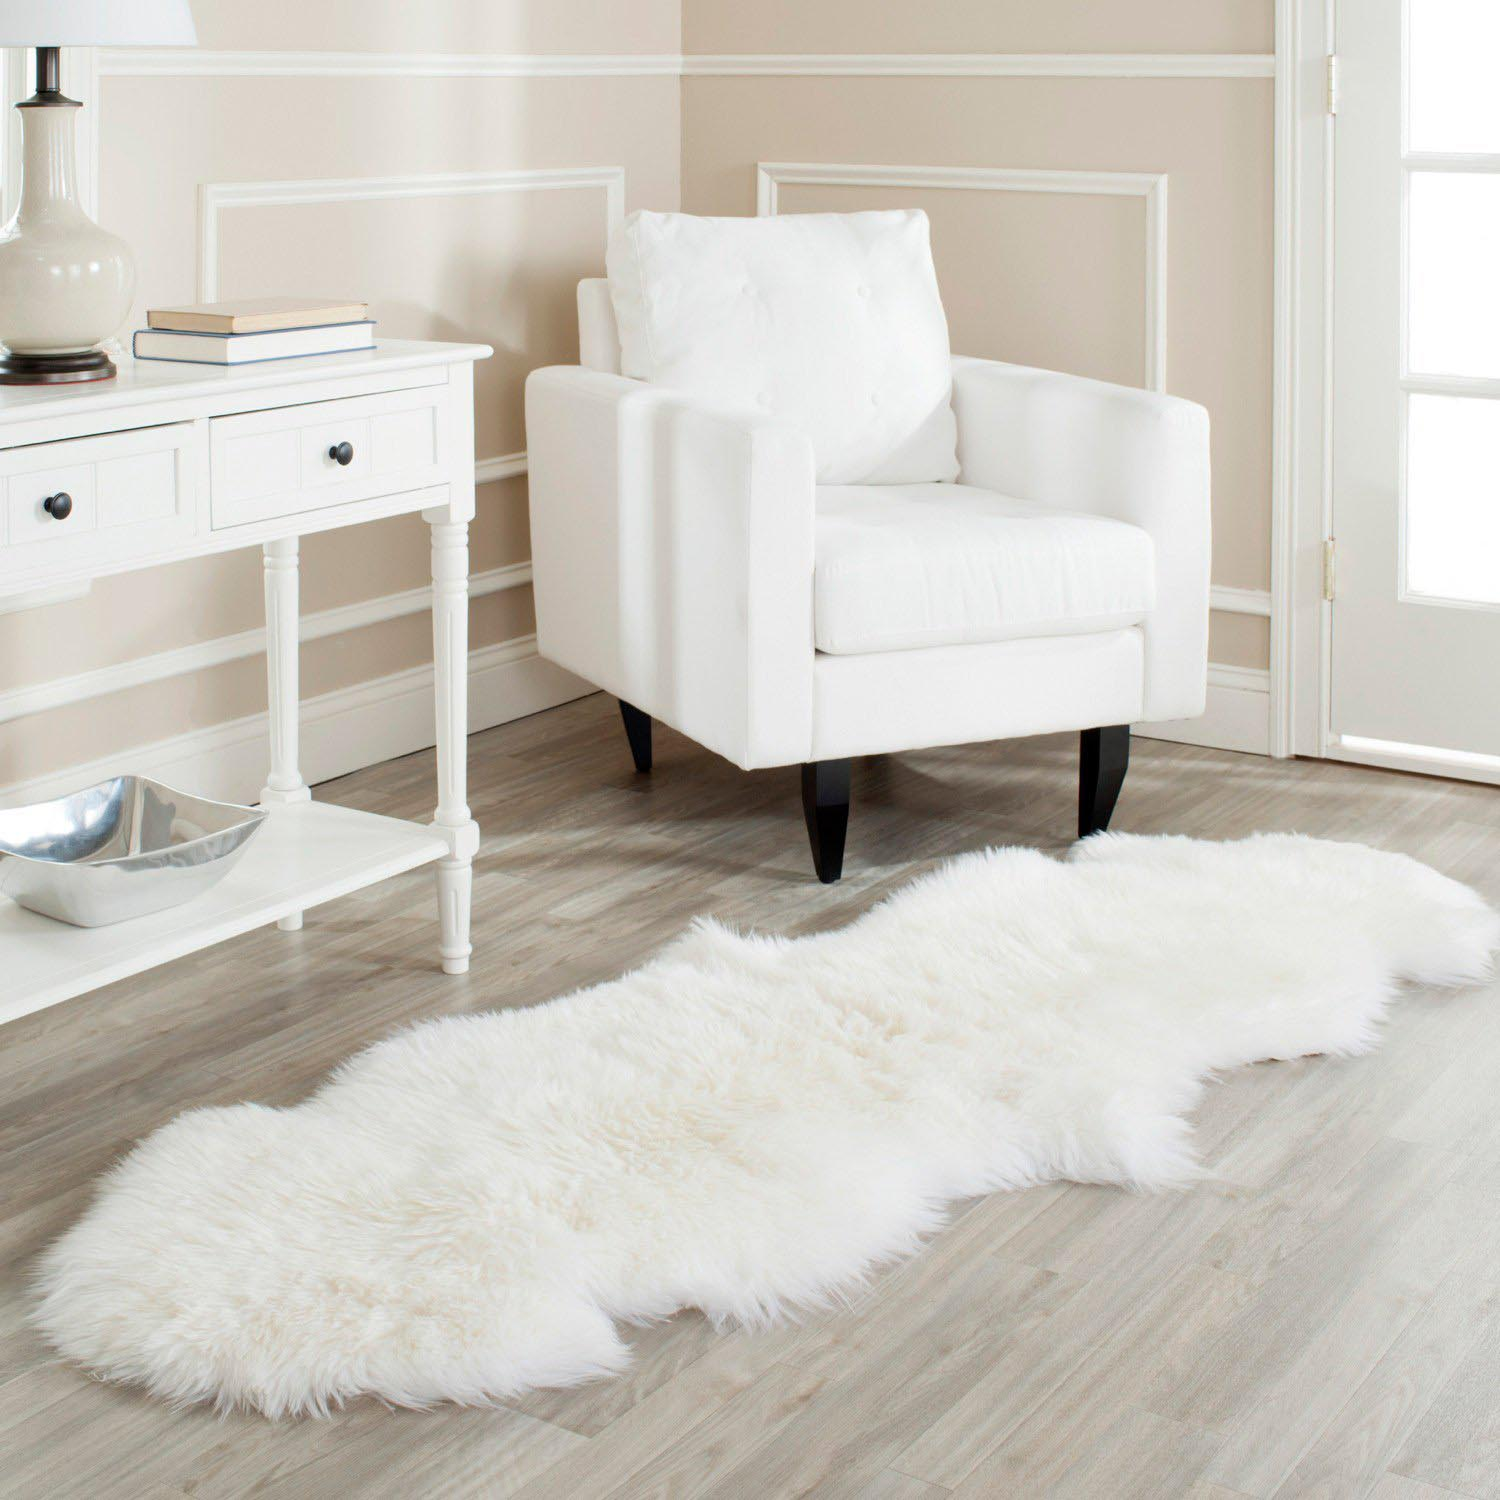 factory products rug white faux plus place warm fuzzies real sheepskin area fur collections